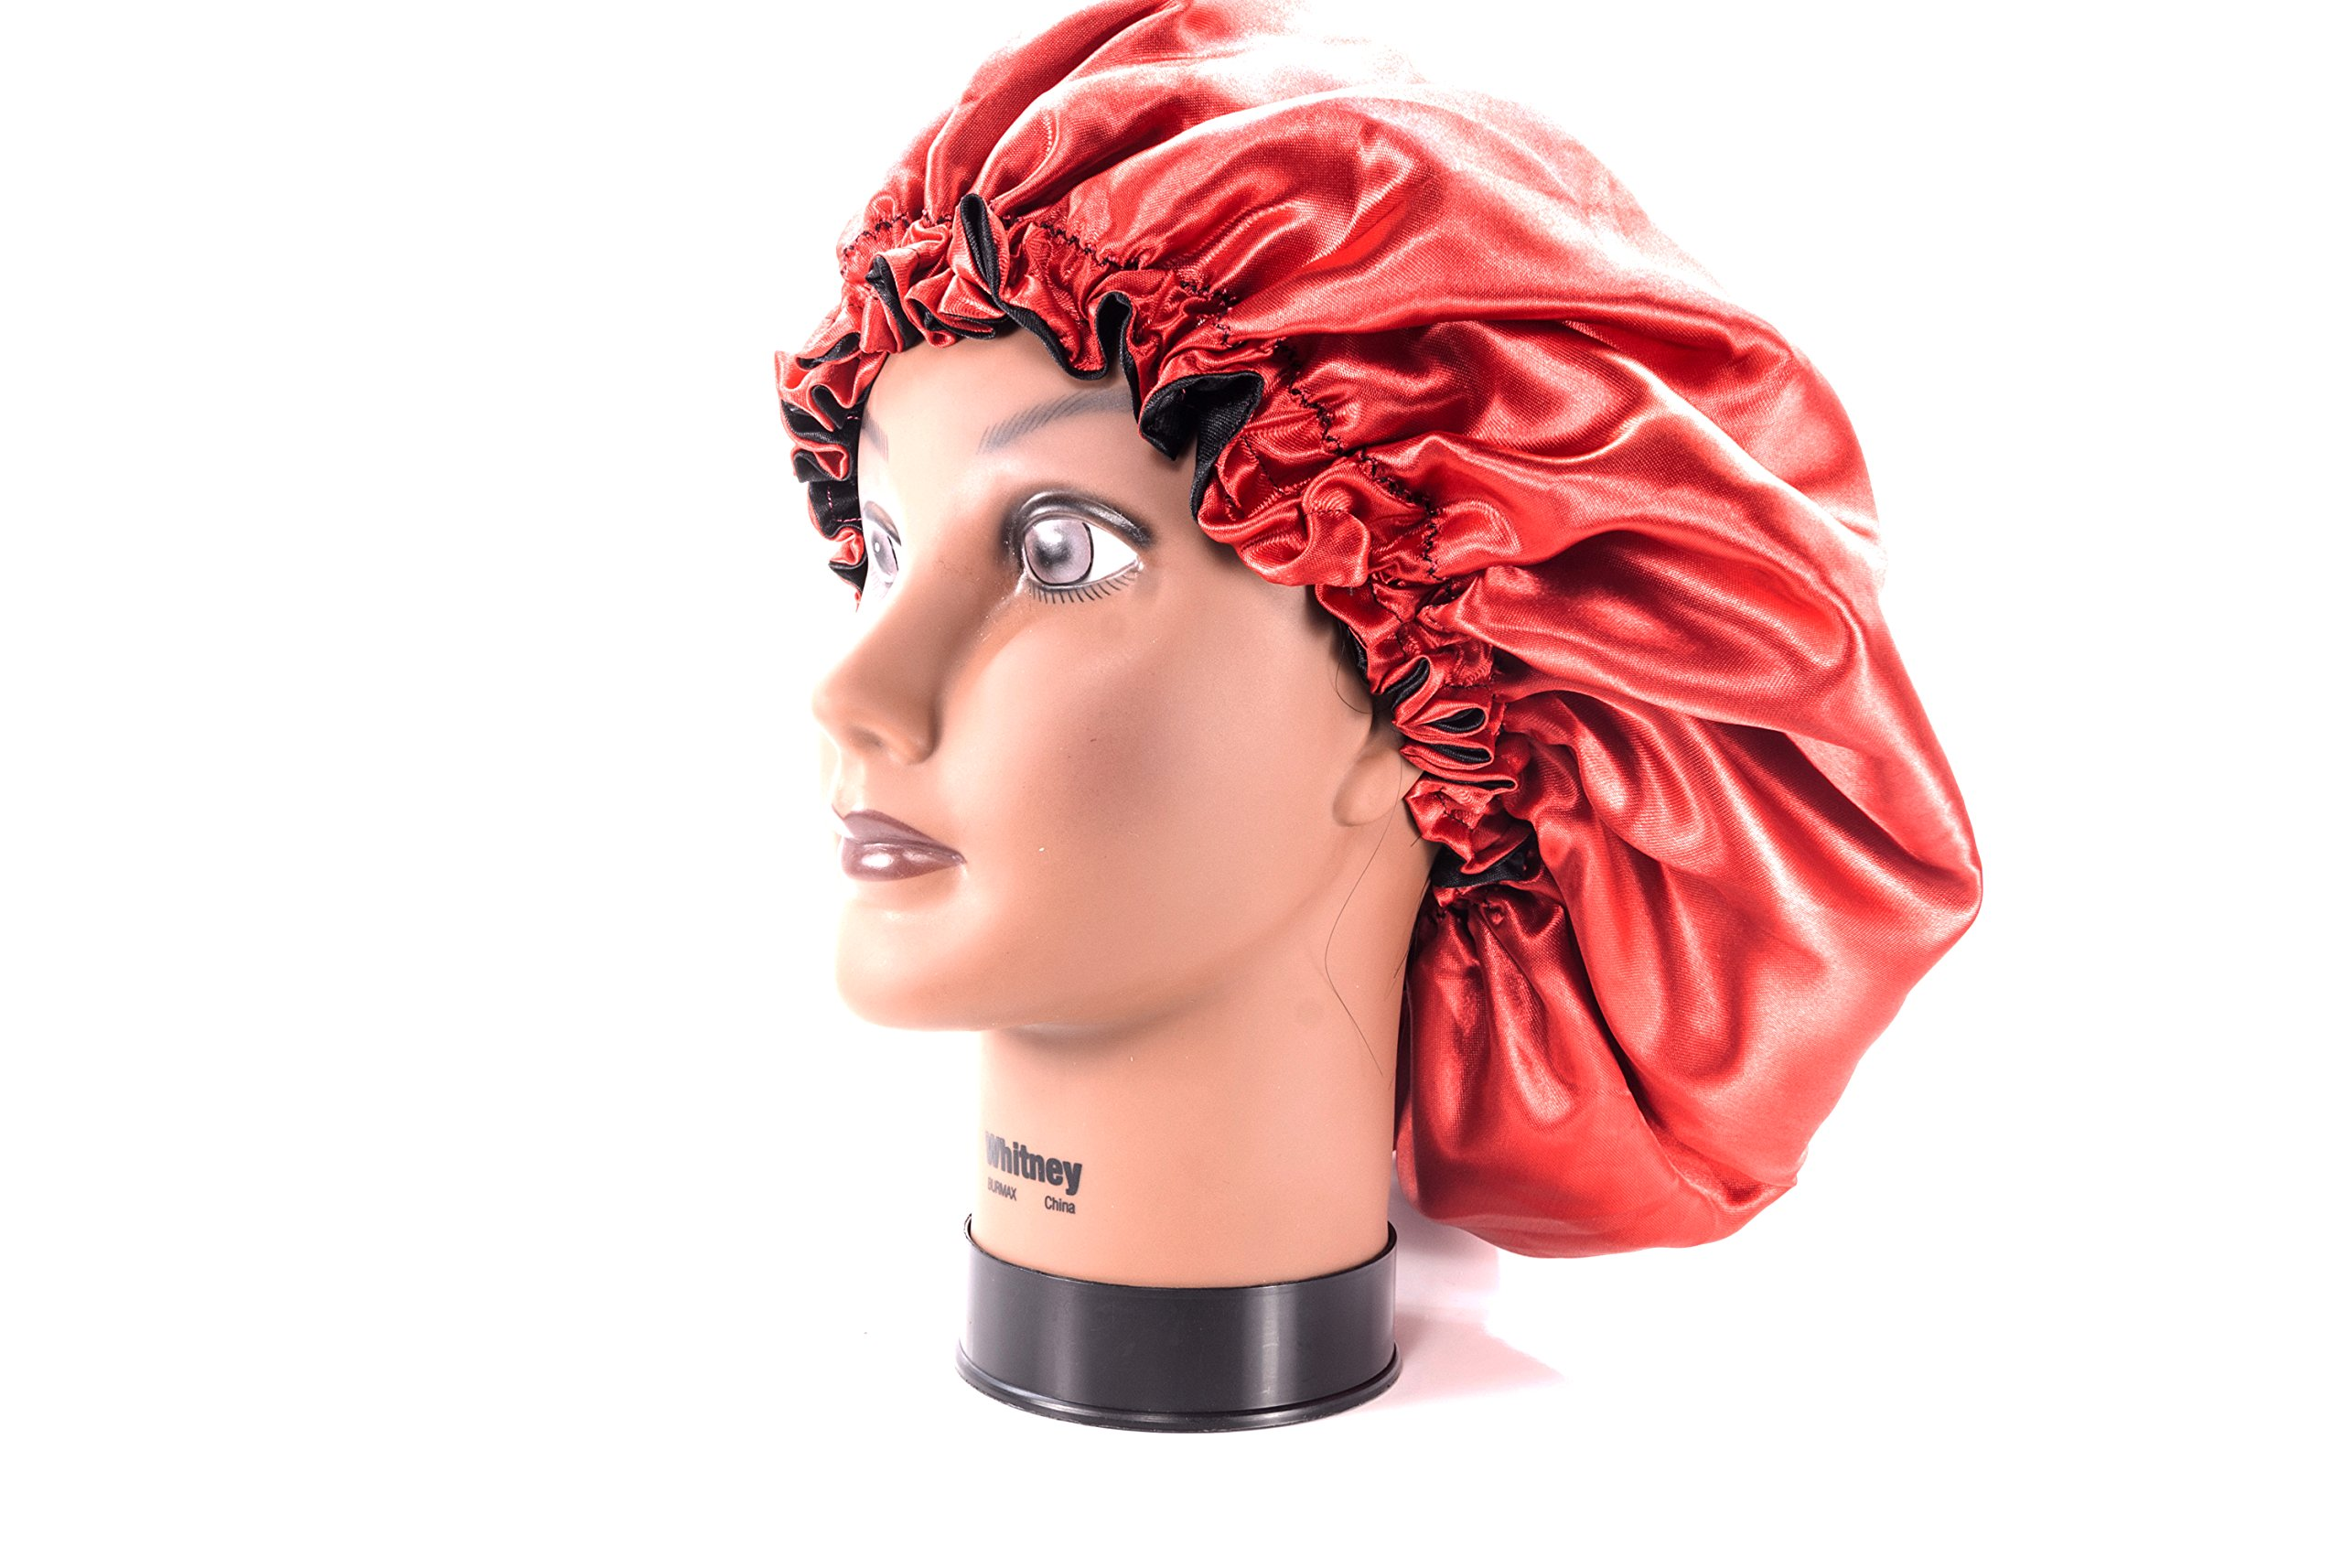 (X-Large, RED) New 24'' Handmade Fully Reversible Luxuries Pure Satin Hair Bonnet Safe For All Hair Types - Most Beneficial Hair care Product Available - Royal Sensations Hair Bonnet